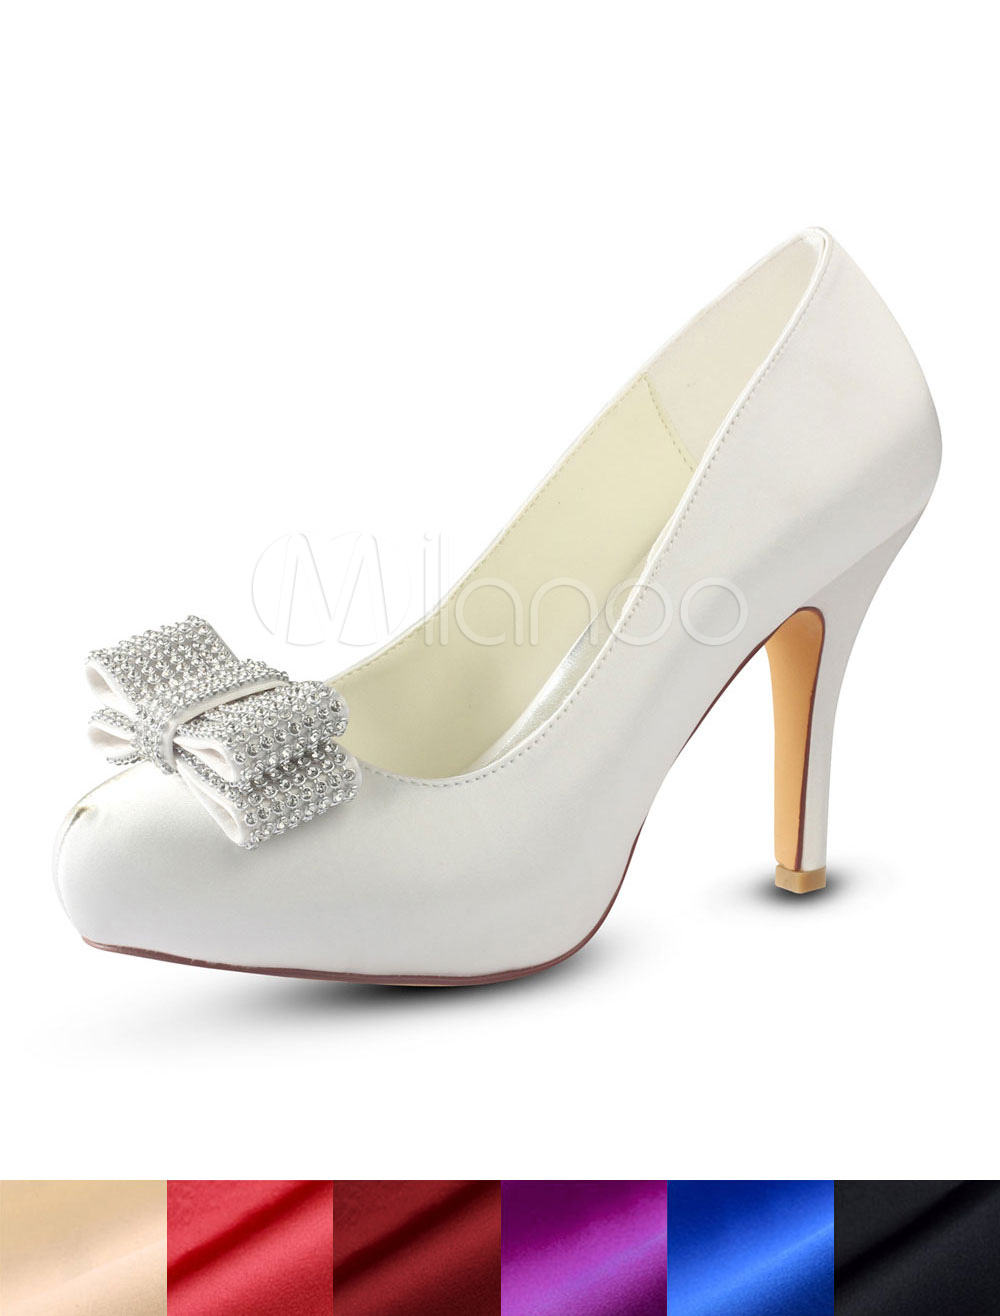 Buy Ivory Wedding Shoes Silk Rhinestones Bow Slip On Pumps High Heel Bridal Shoes for $57.59 in Milanoo store